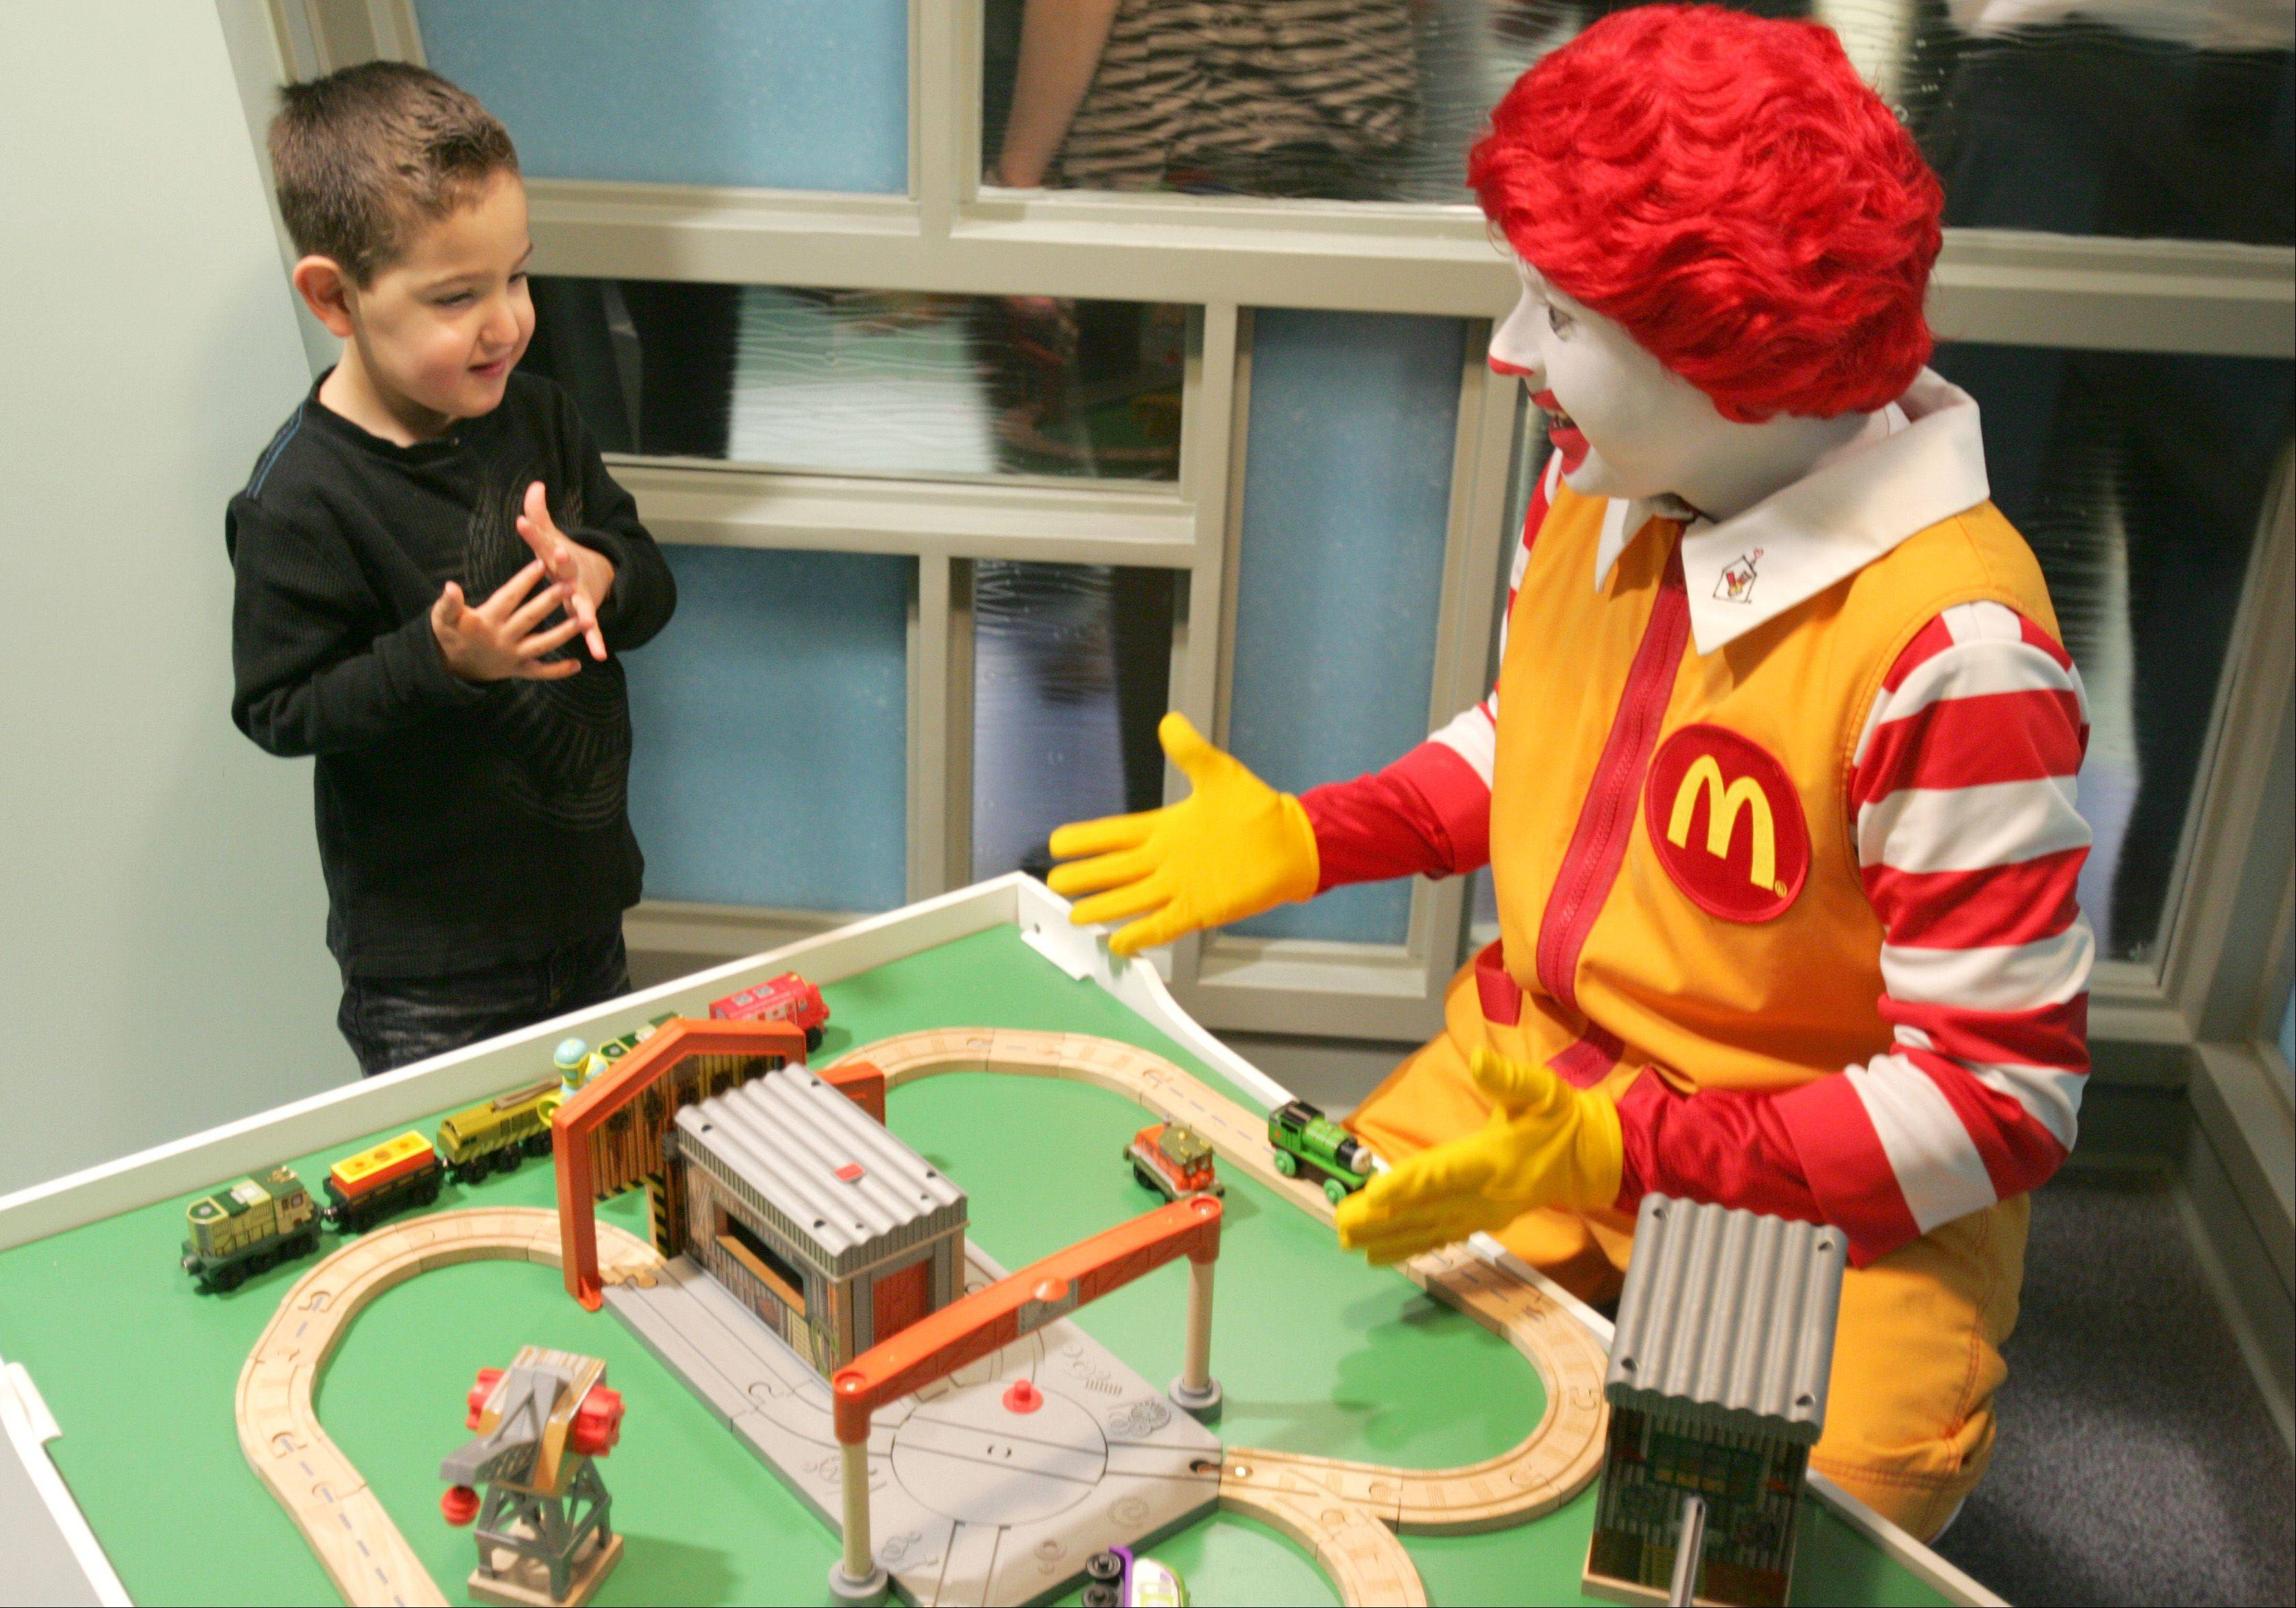 Edward unveils state's first Ronald McDonald room